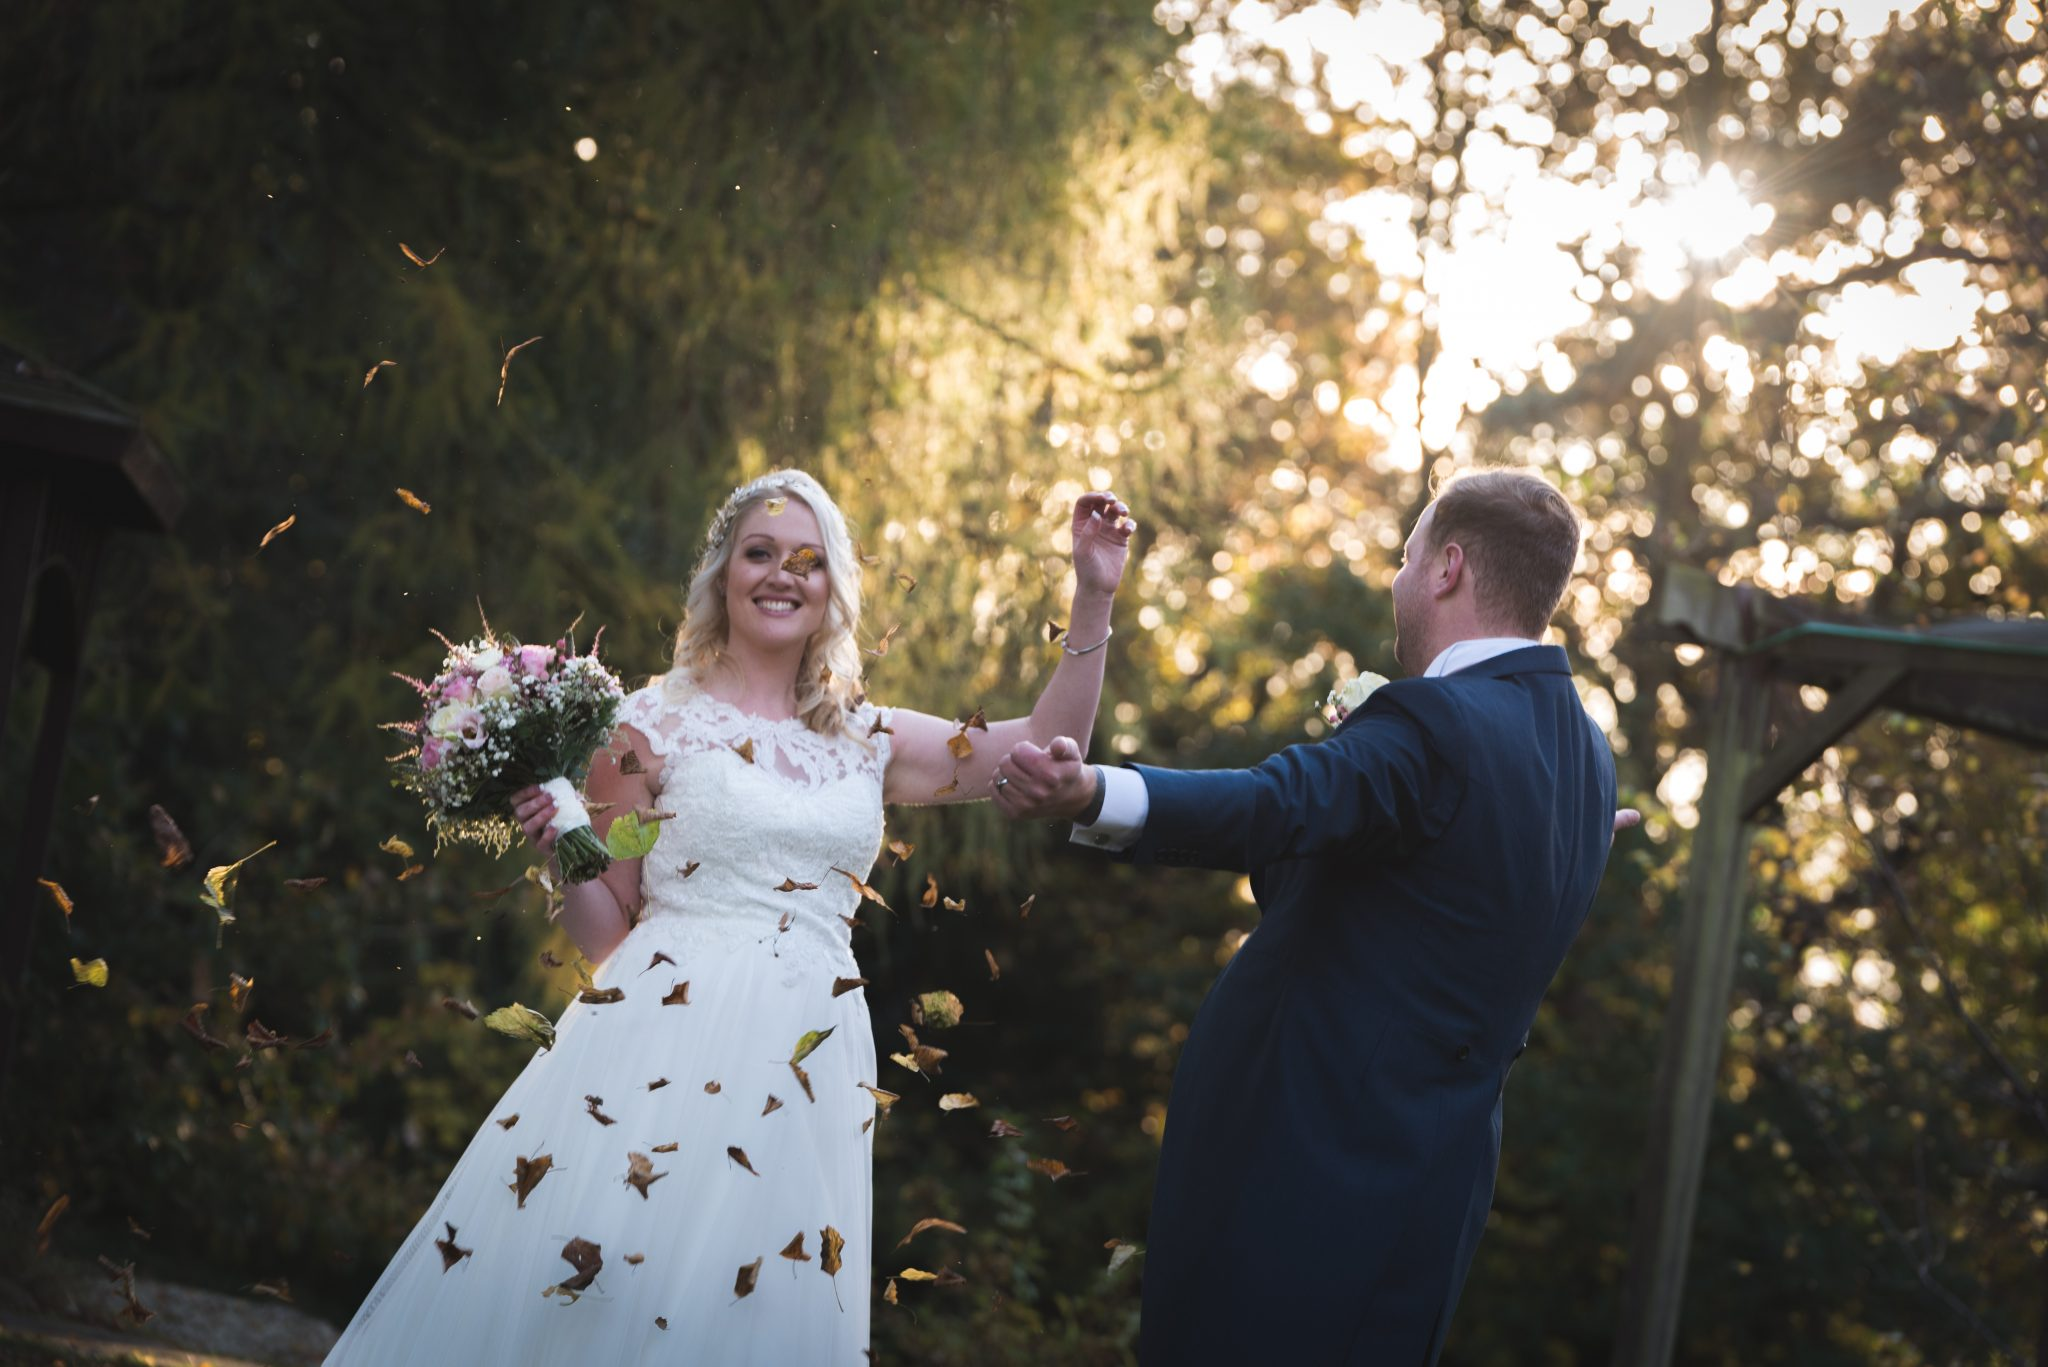 Lovely Autumn Wedding Photography at Mercure Kidderminster - Dudley, Stourbridge, Kidderminster, Birmingham Wedding Photographers & Videographers